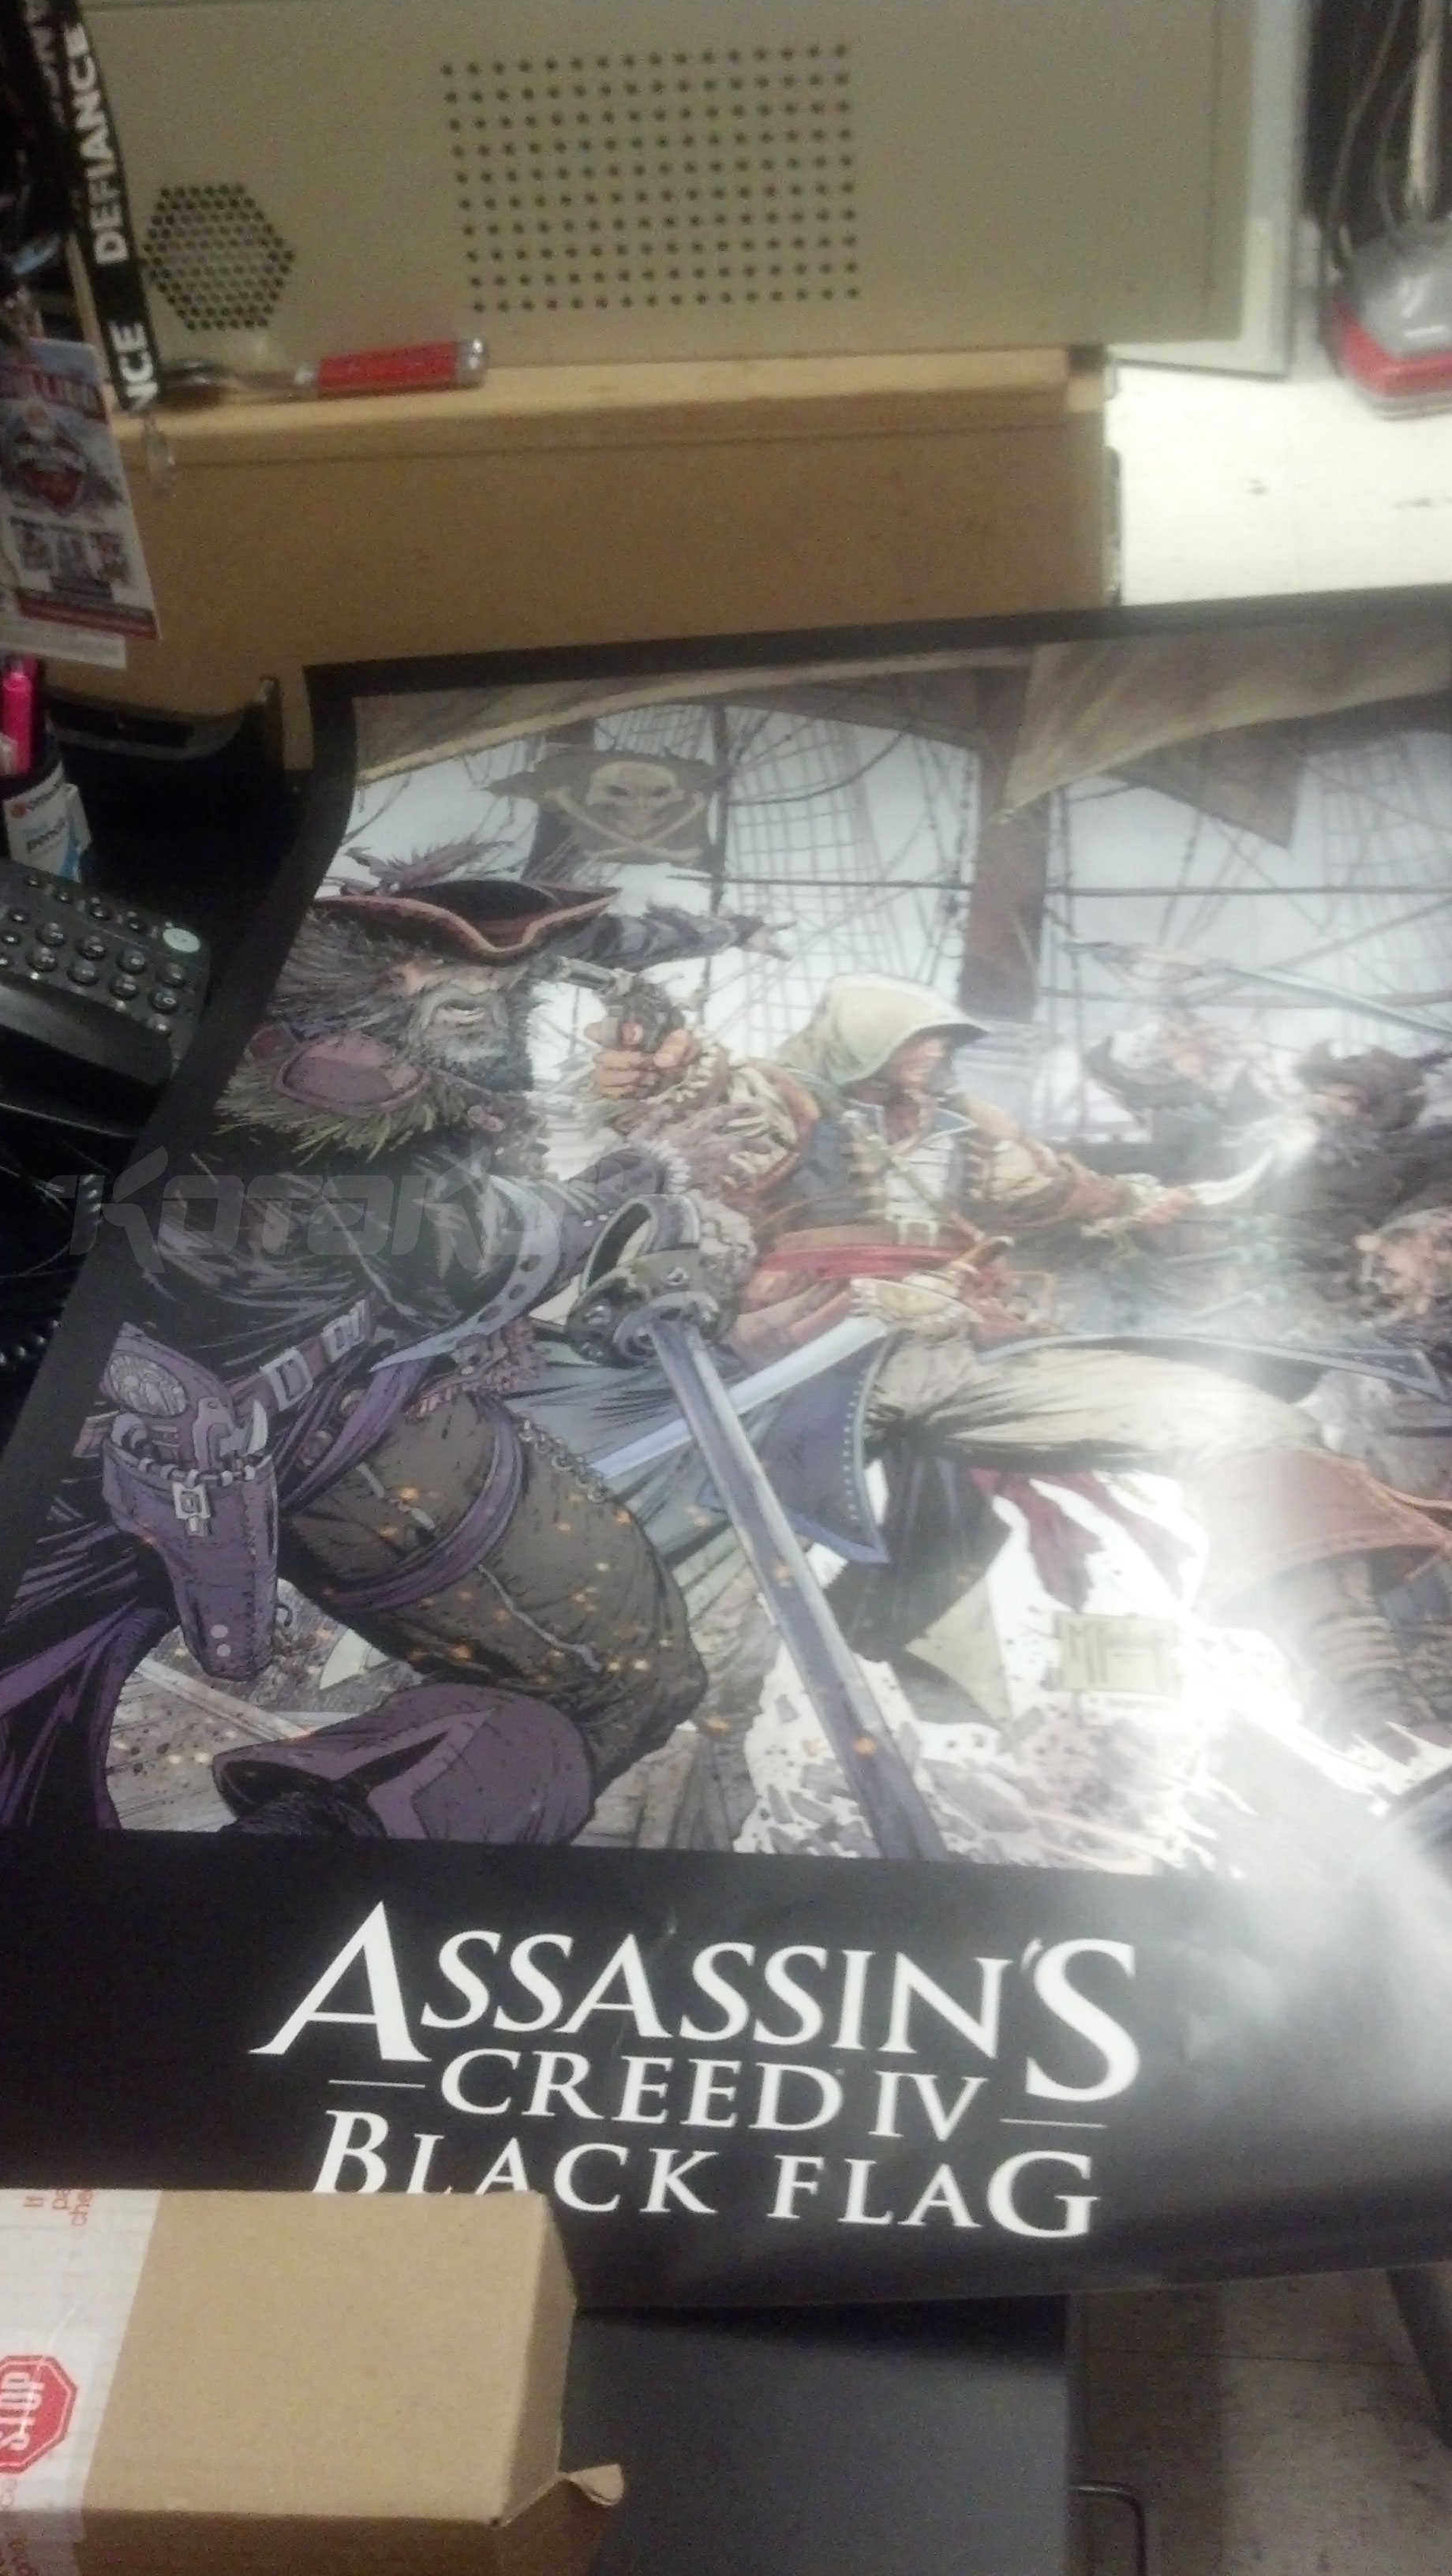 Poster for Assassin's Creed IV Black Flag